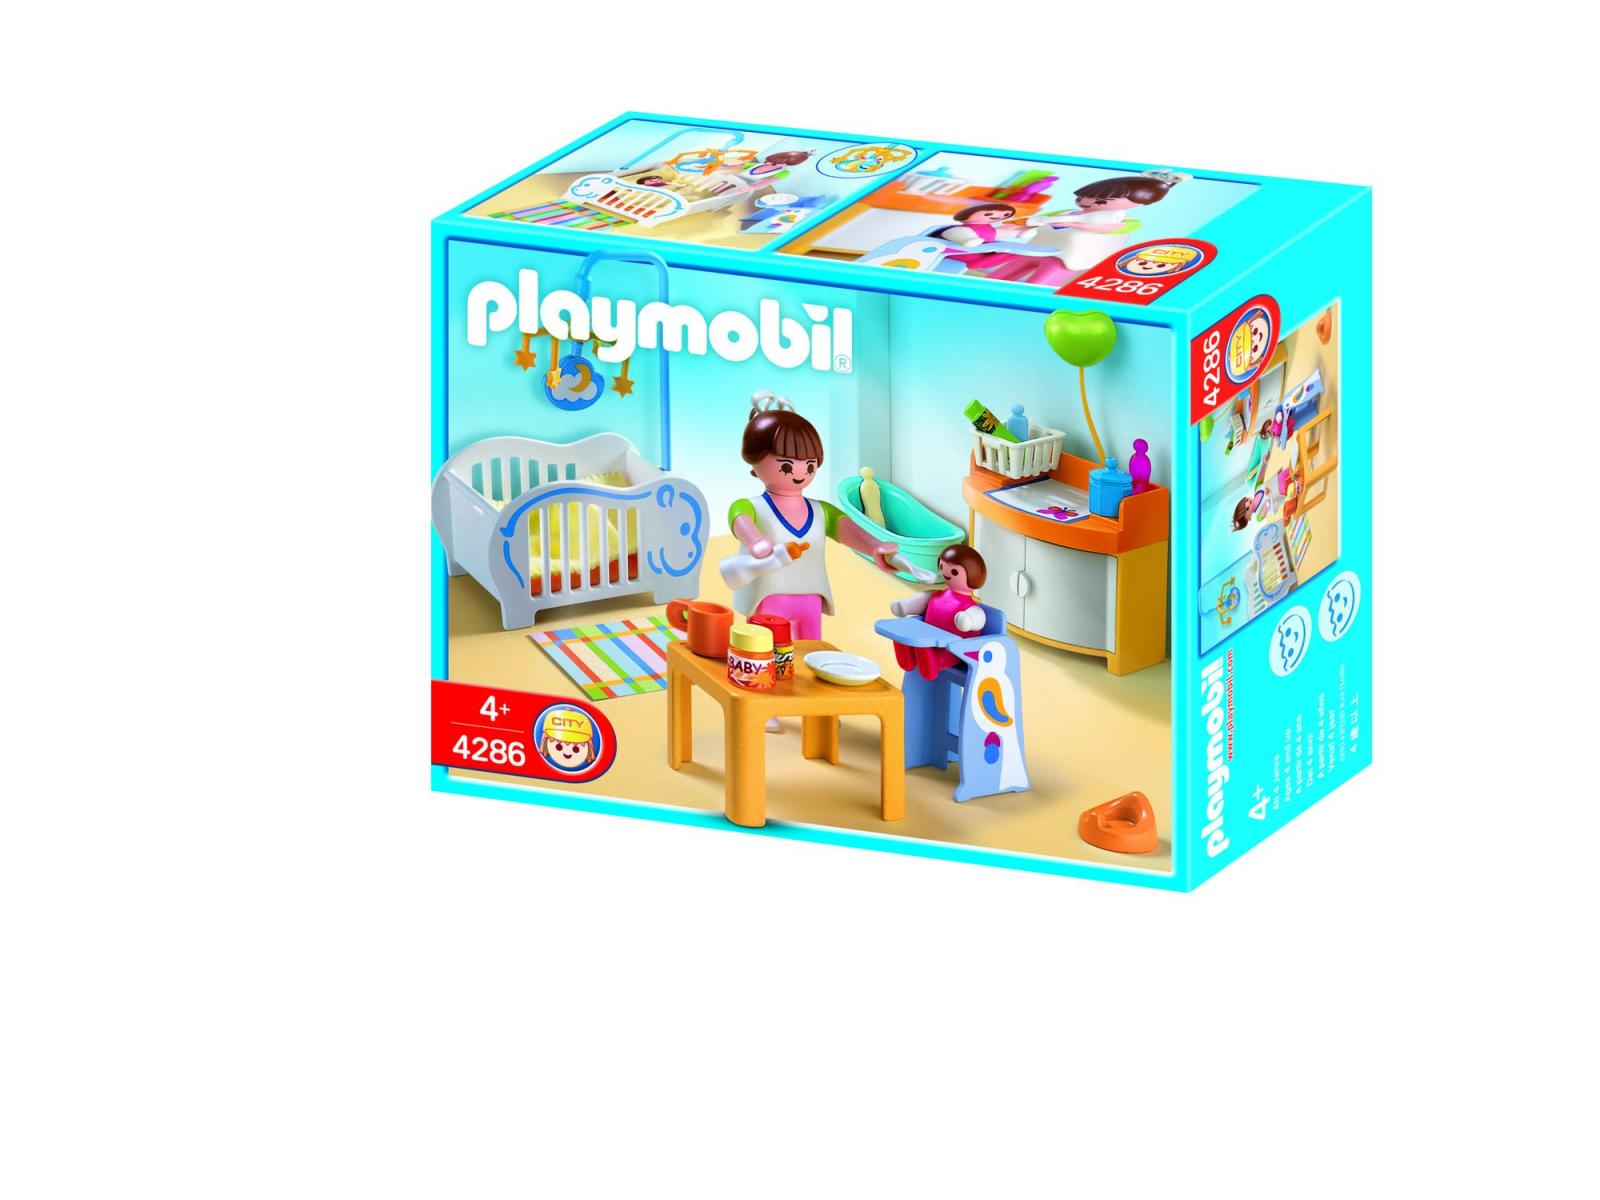 playmobil 4286 chambre de bb - Play Mobile Fille